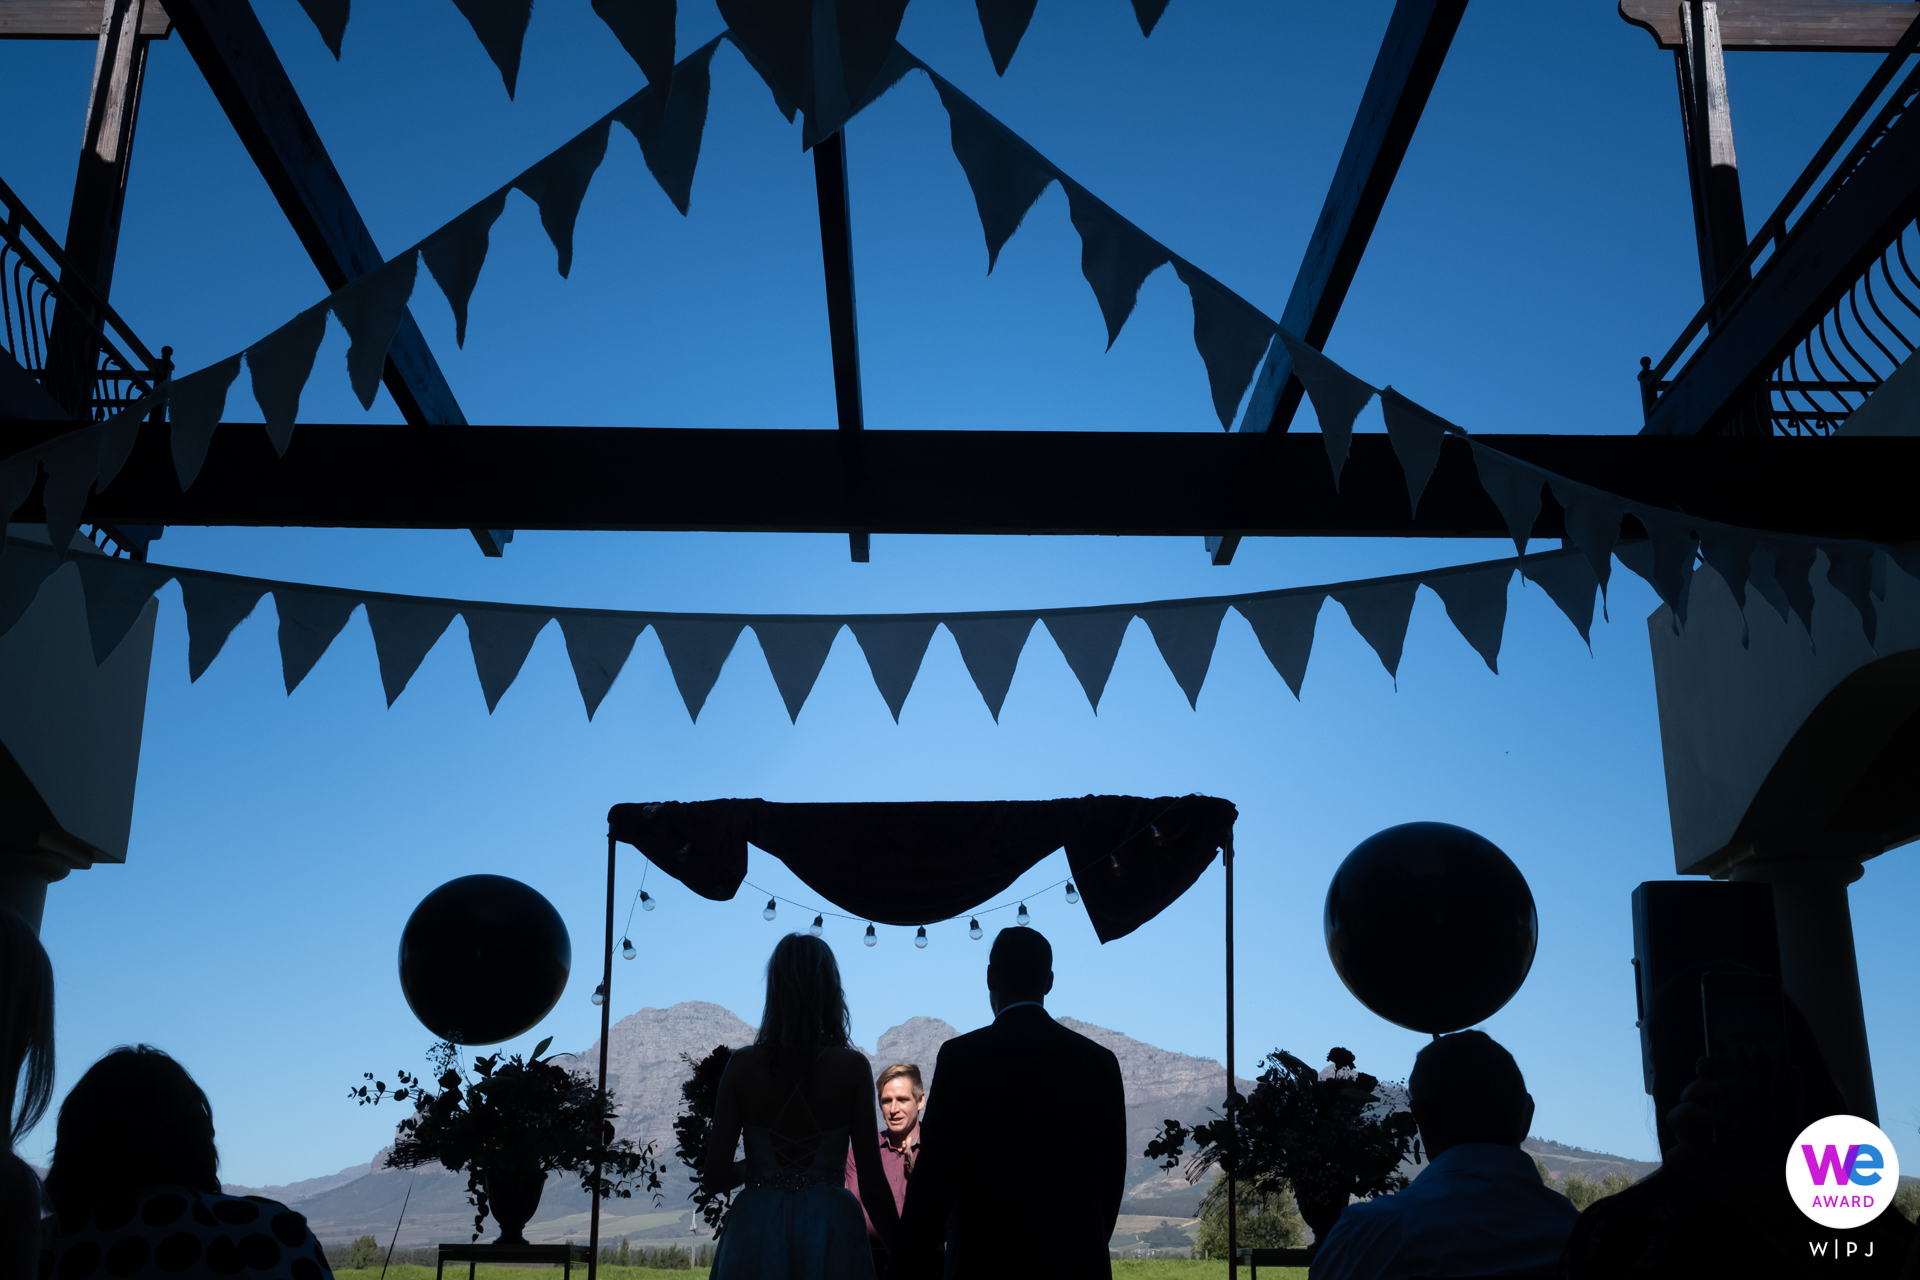 Franschhoek, Cape Winelands, South Africa Outdoor Ceremony Wedding Photo with majestic mountains making for a beautiful backdrop